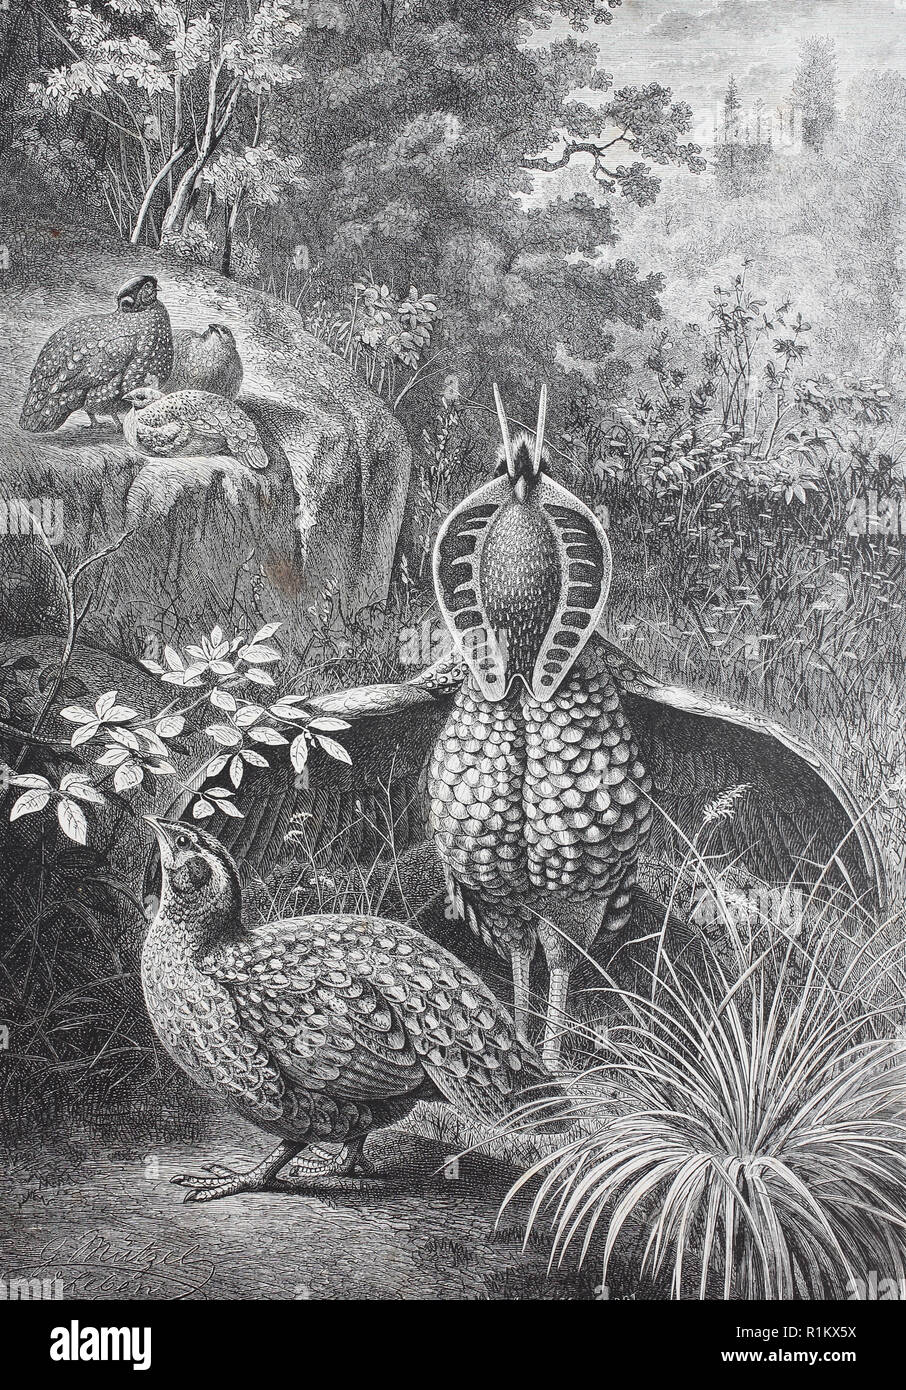 Digital improved reproduction, Tragopans is a bird genus in the Phasianidae family, which is commonly called horned pheasant - Stock Image